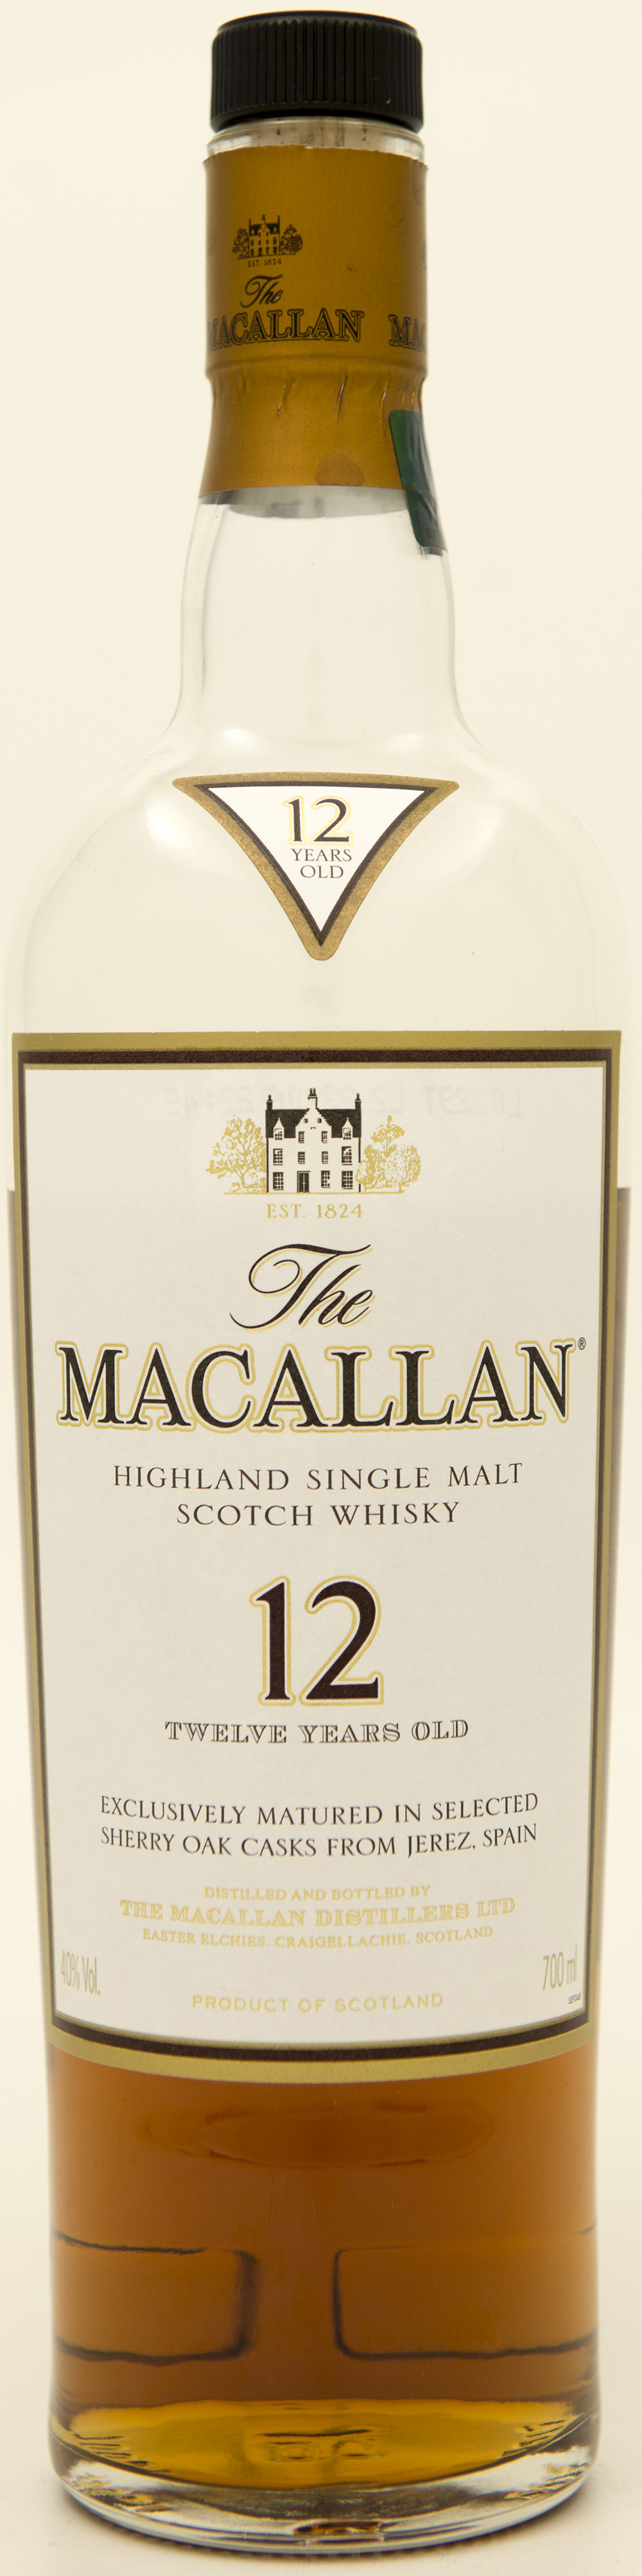 Billede: DSC_3657 - TheMacallan 12 - bottle front.jpg